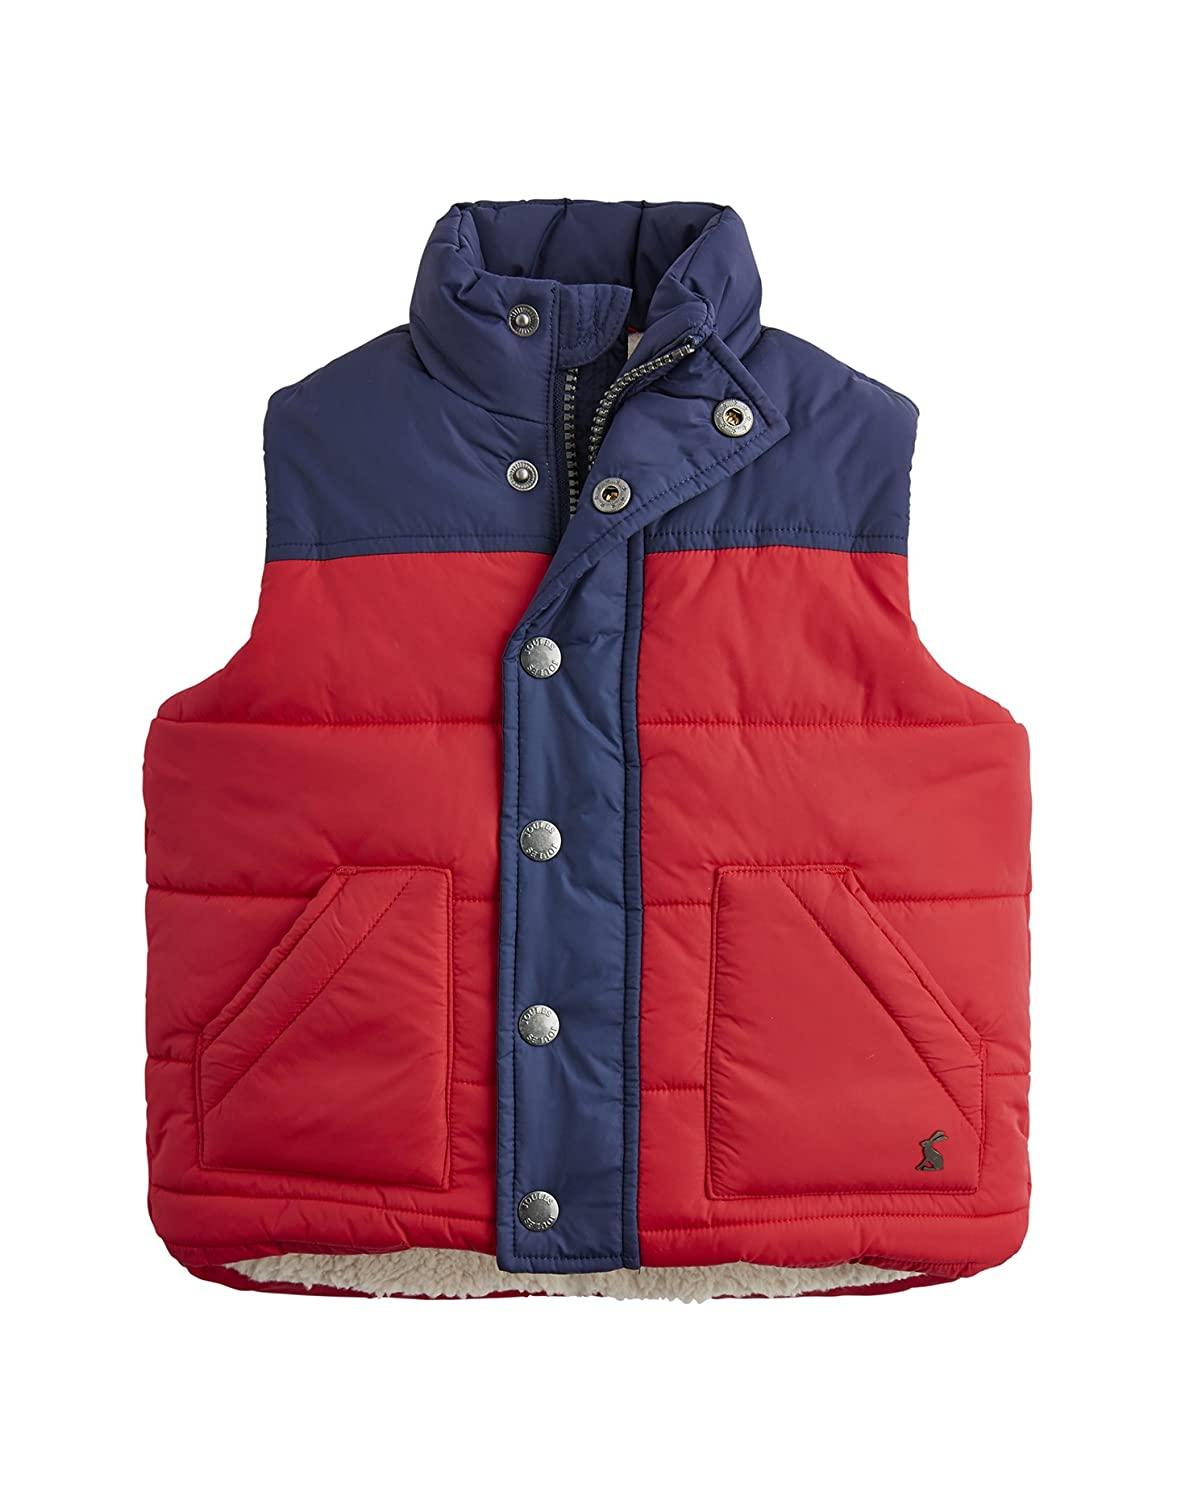 Joules Fleece Lined Padded Gilet - Red